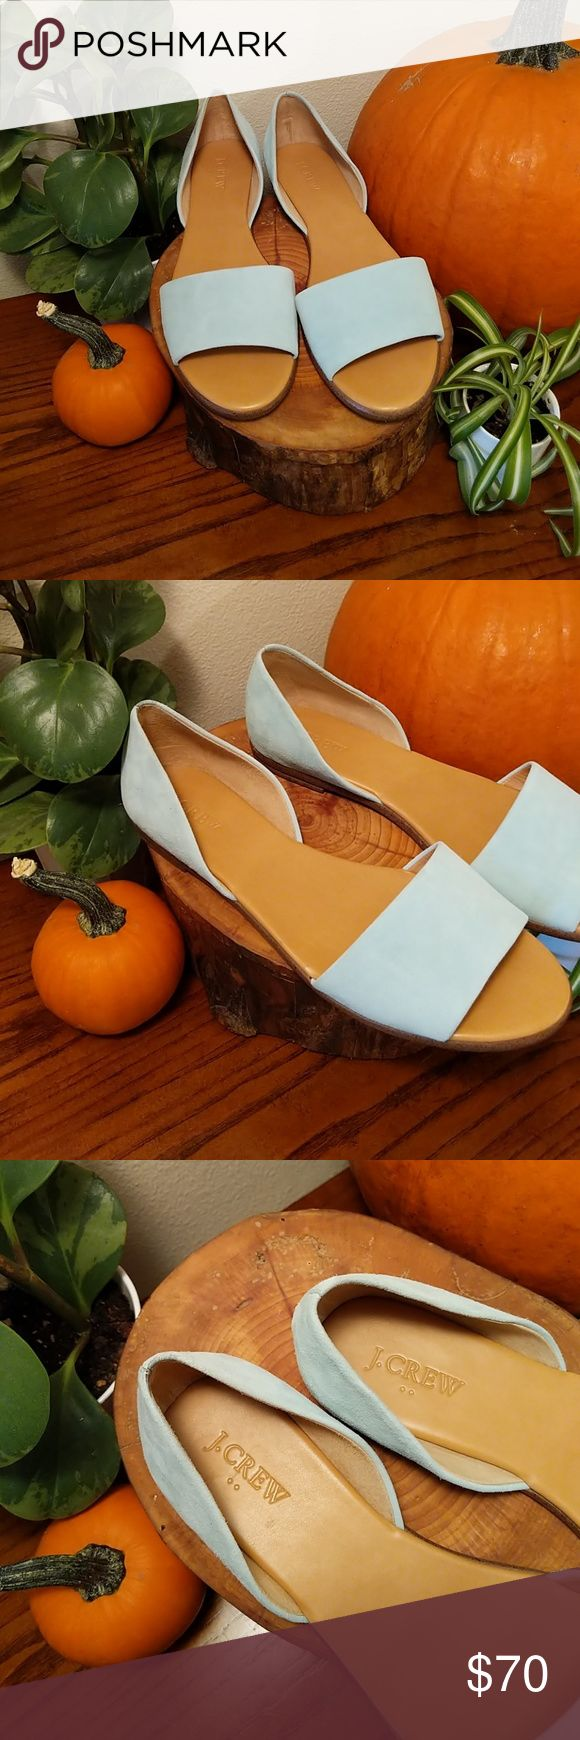 J. Crew Like New Suede Light Blue Open Toe Flats Gently used, only flaws are on the bottom where they've been walked on. Leather upper, man made lining, man made sole. J. Crew Shoes Flats & Loafers